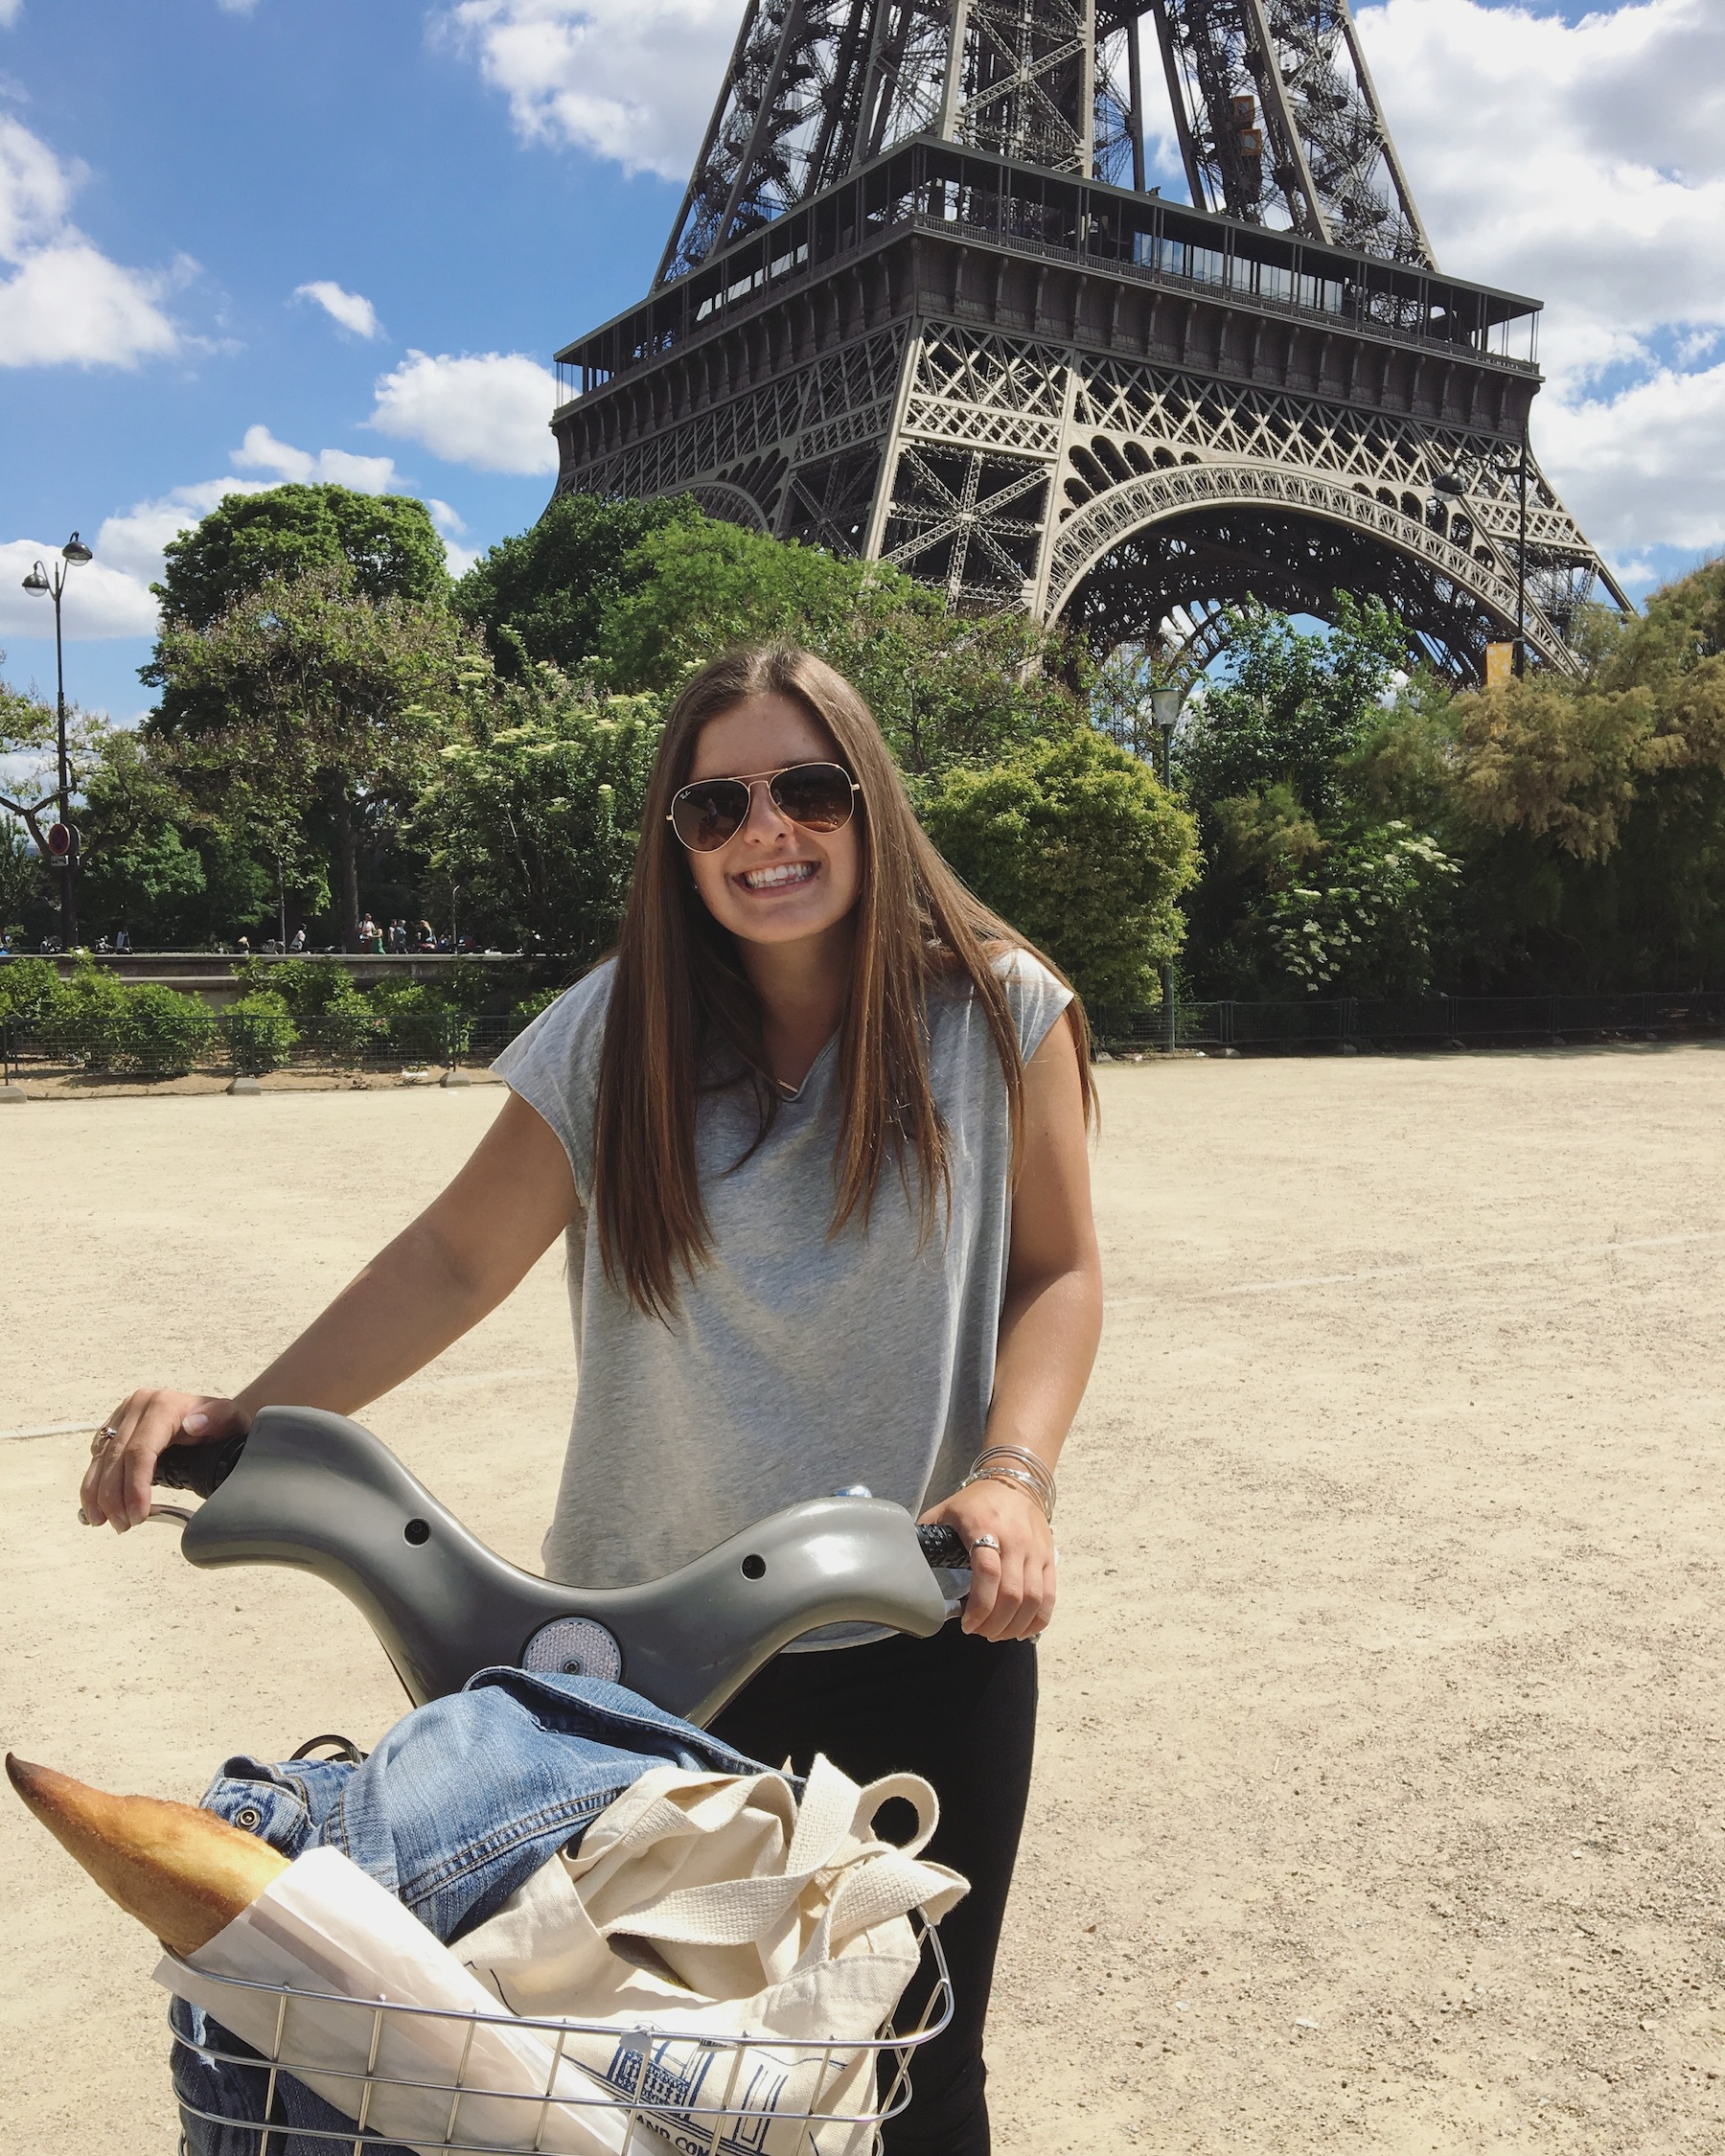 Student Natalie Weidner poses on a bike in front of the Eiffel Tower on a study abroad trip to Paris, France. The metal basket on the front of her bicycle contains a french baguette.